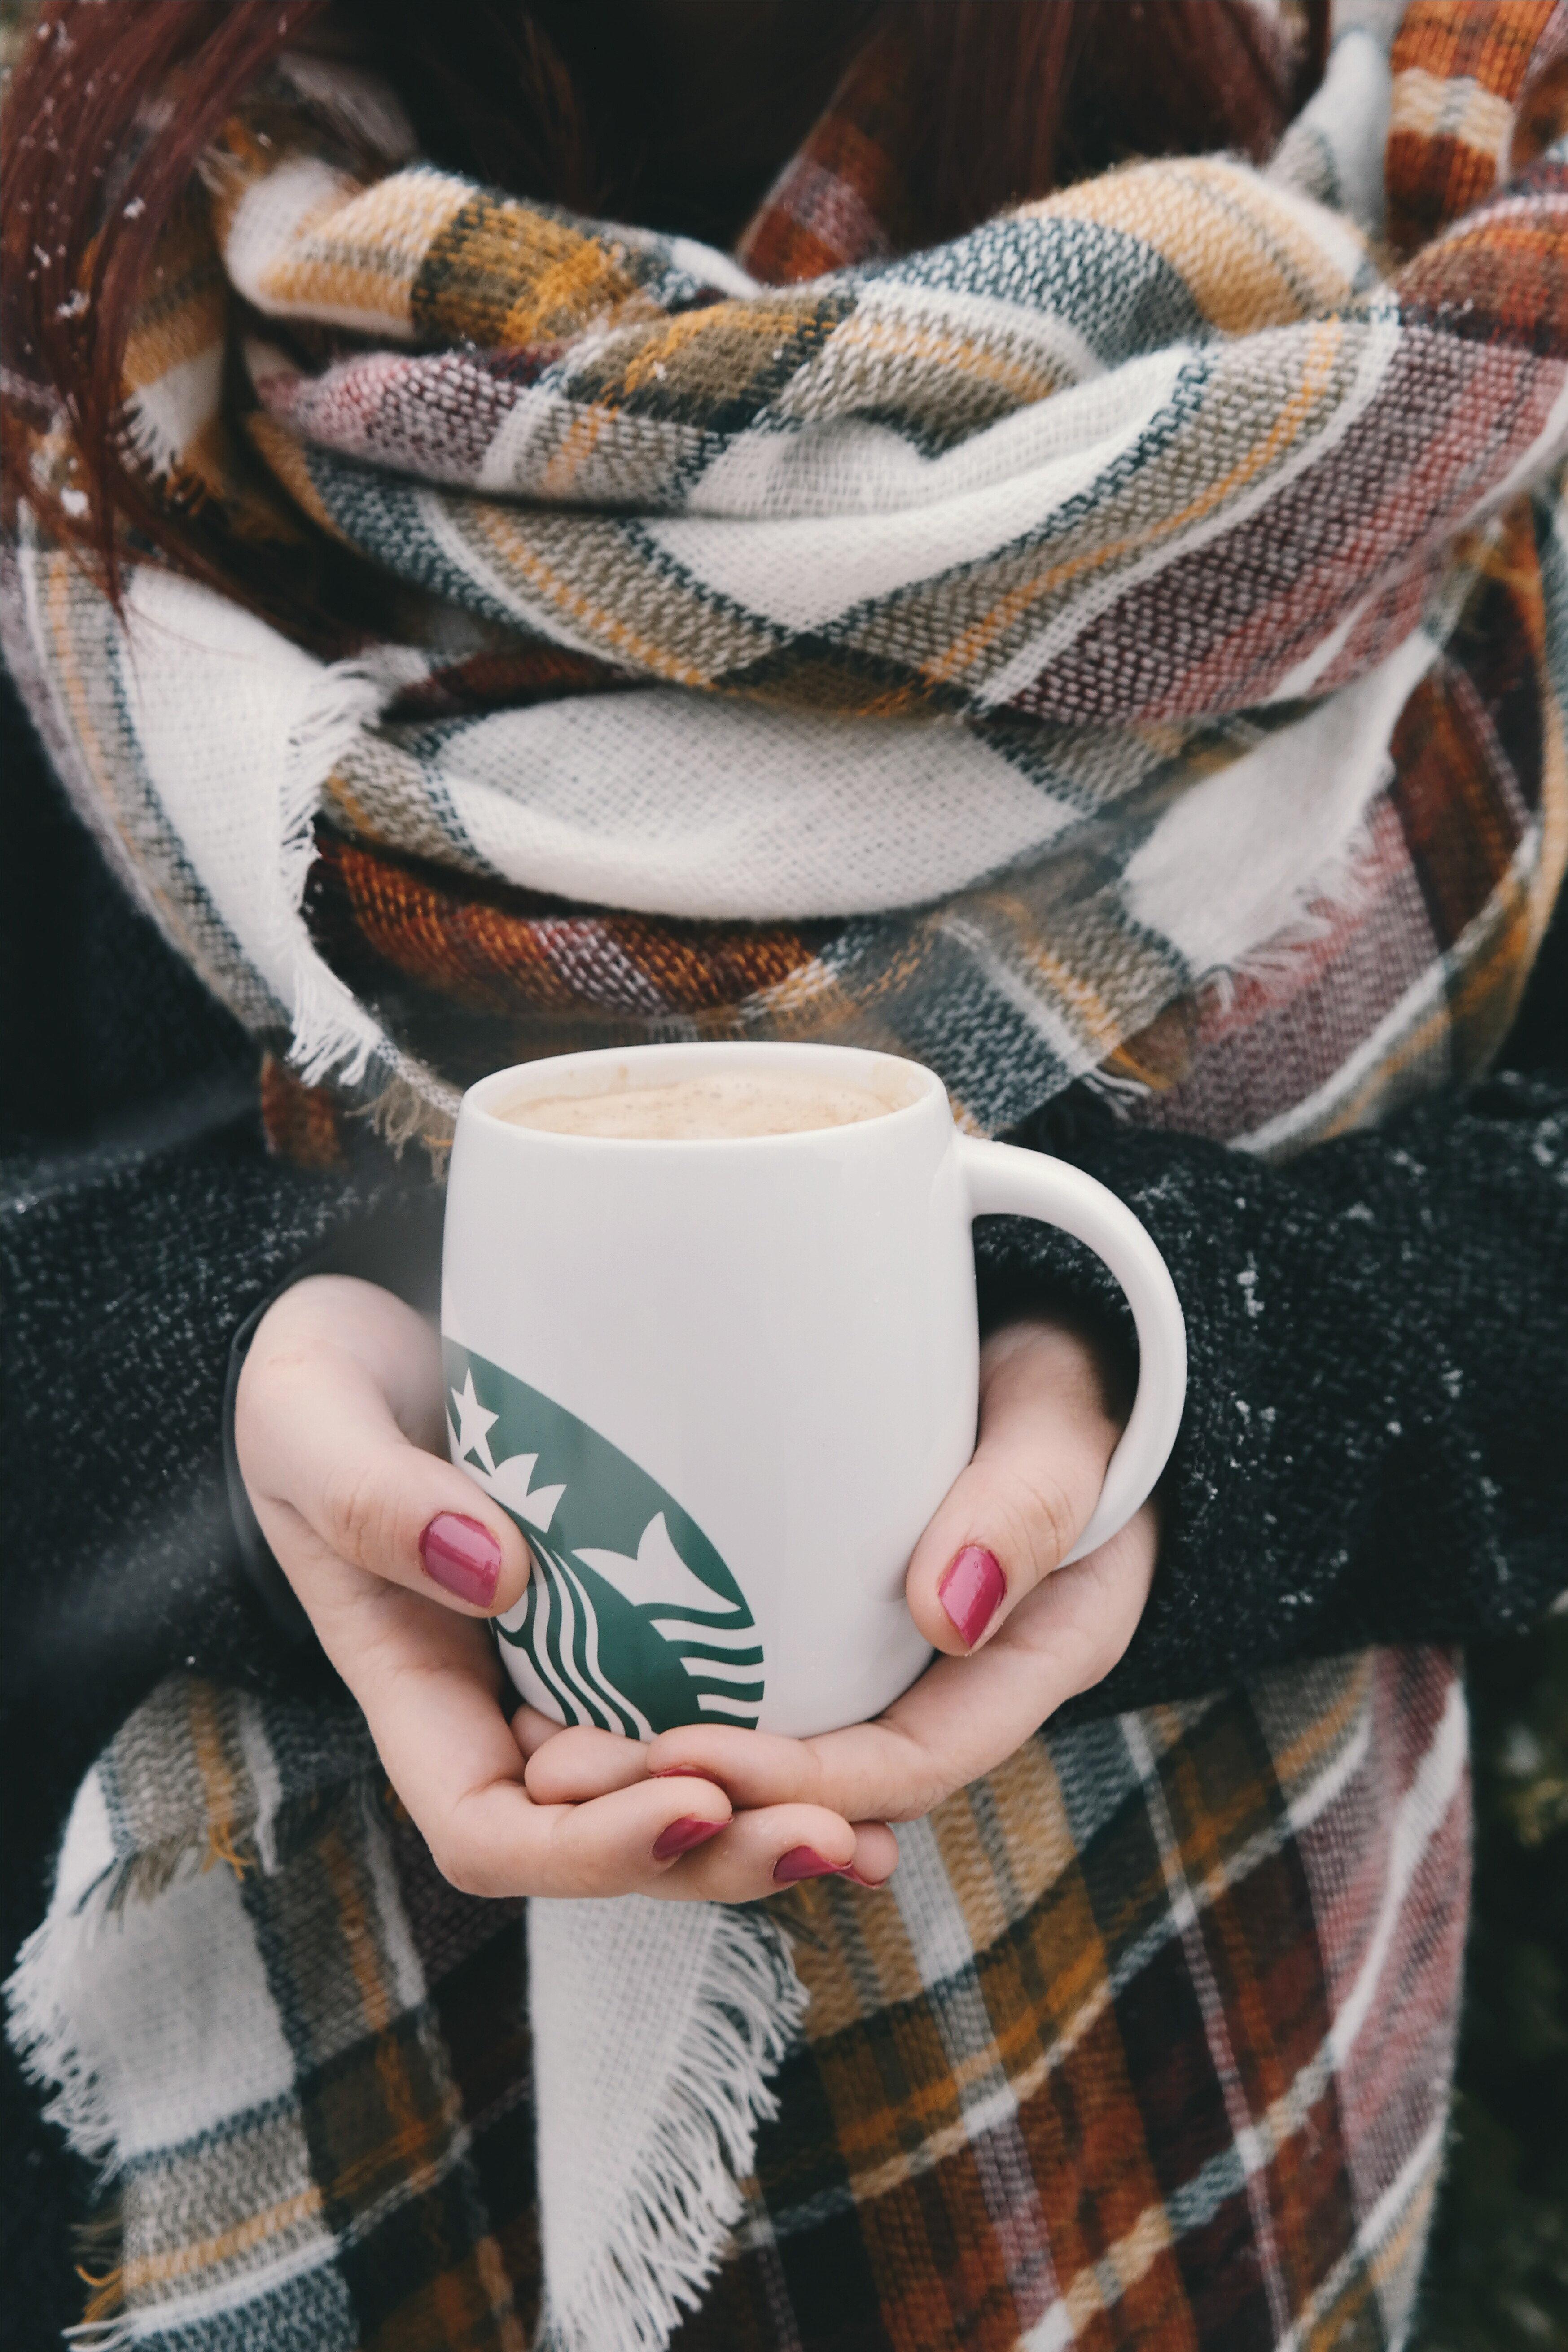 A young woman wearing a plaid scarf holds a Starbucks mug containing a latte (presumably a pumpkin spice latte).